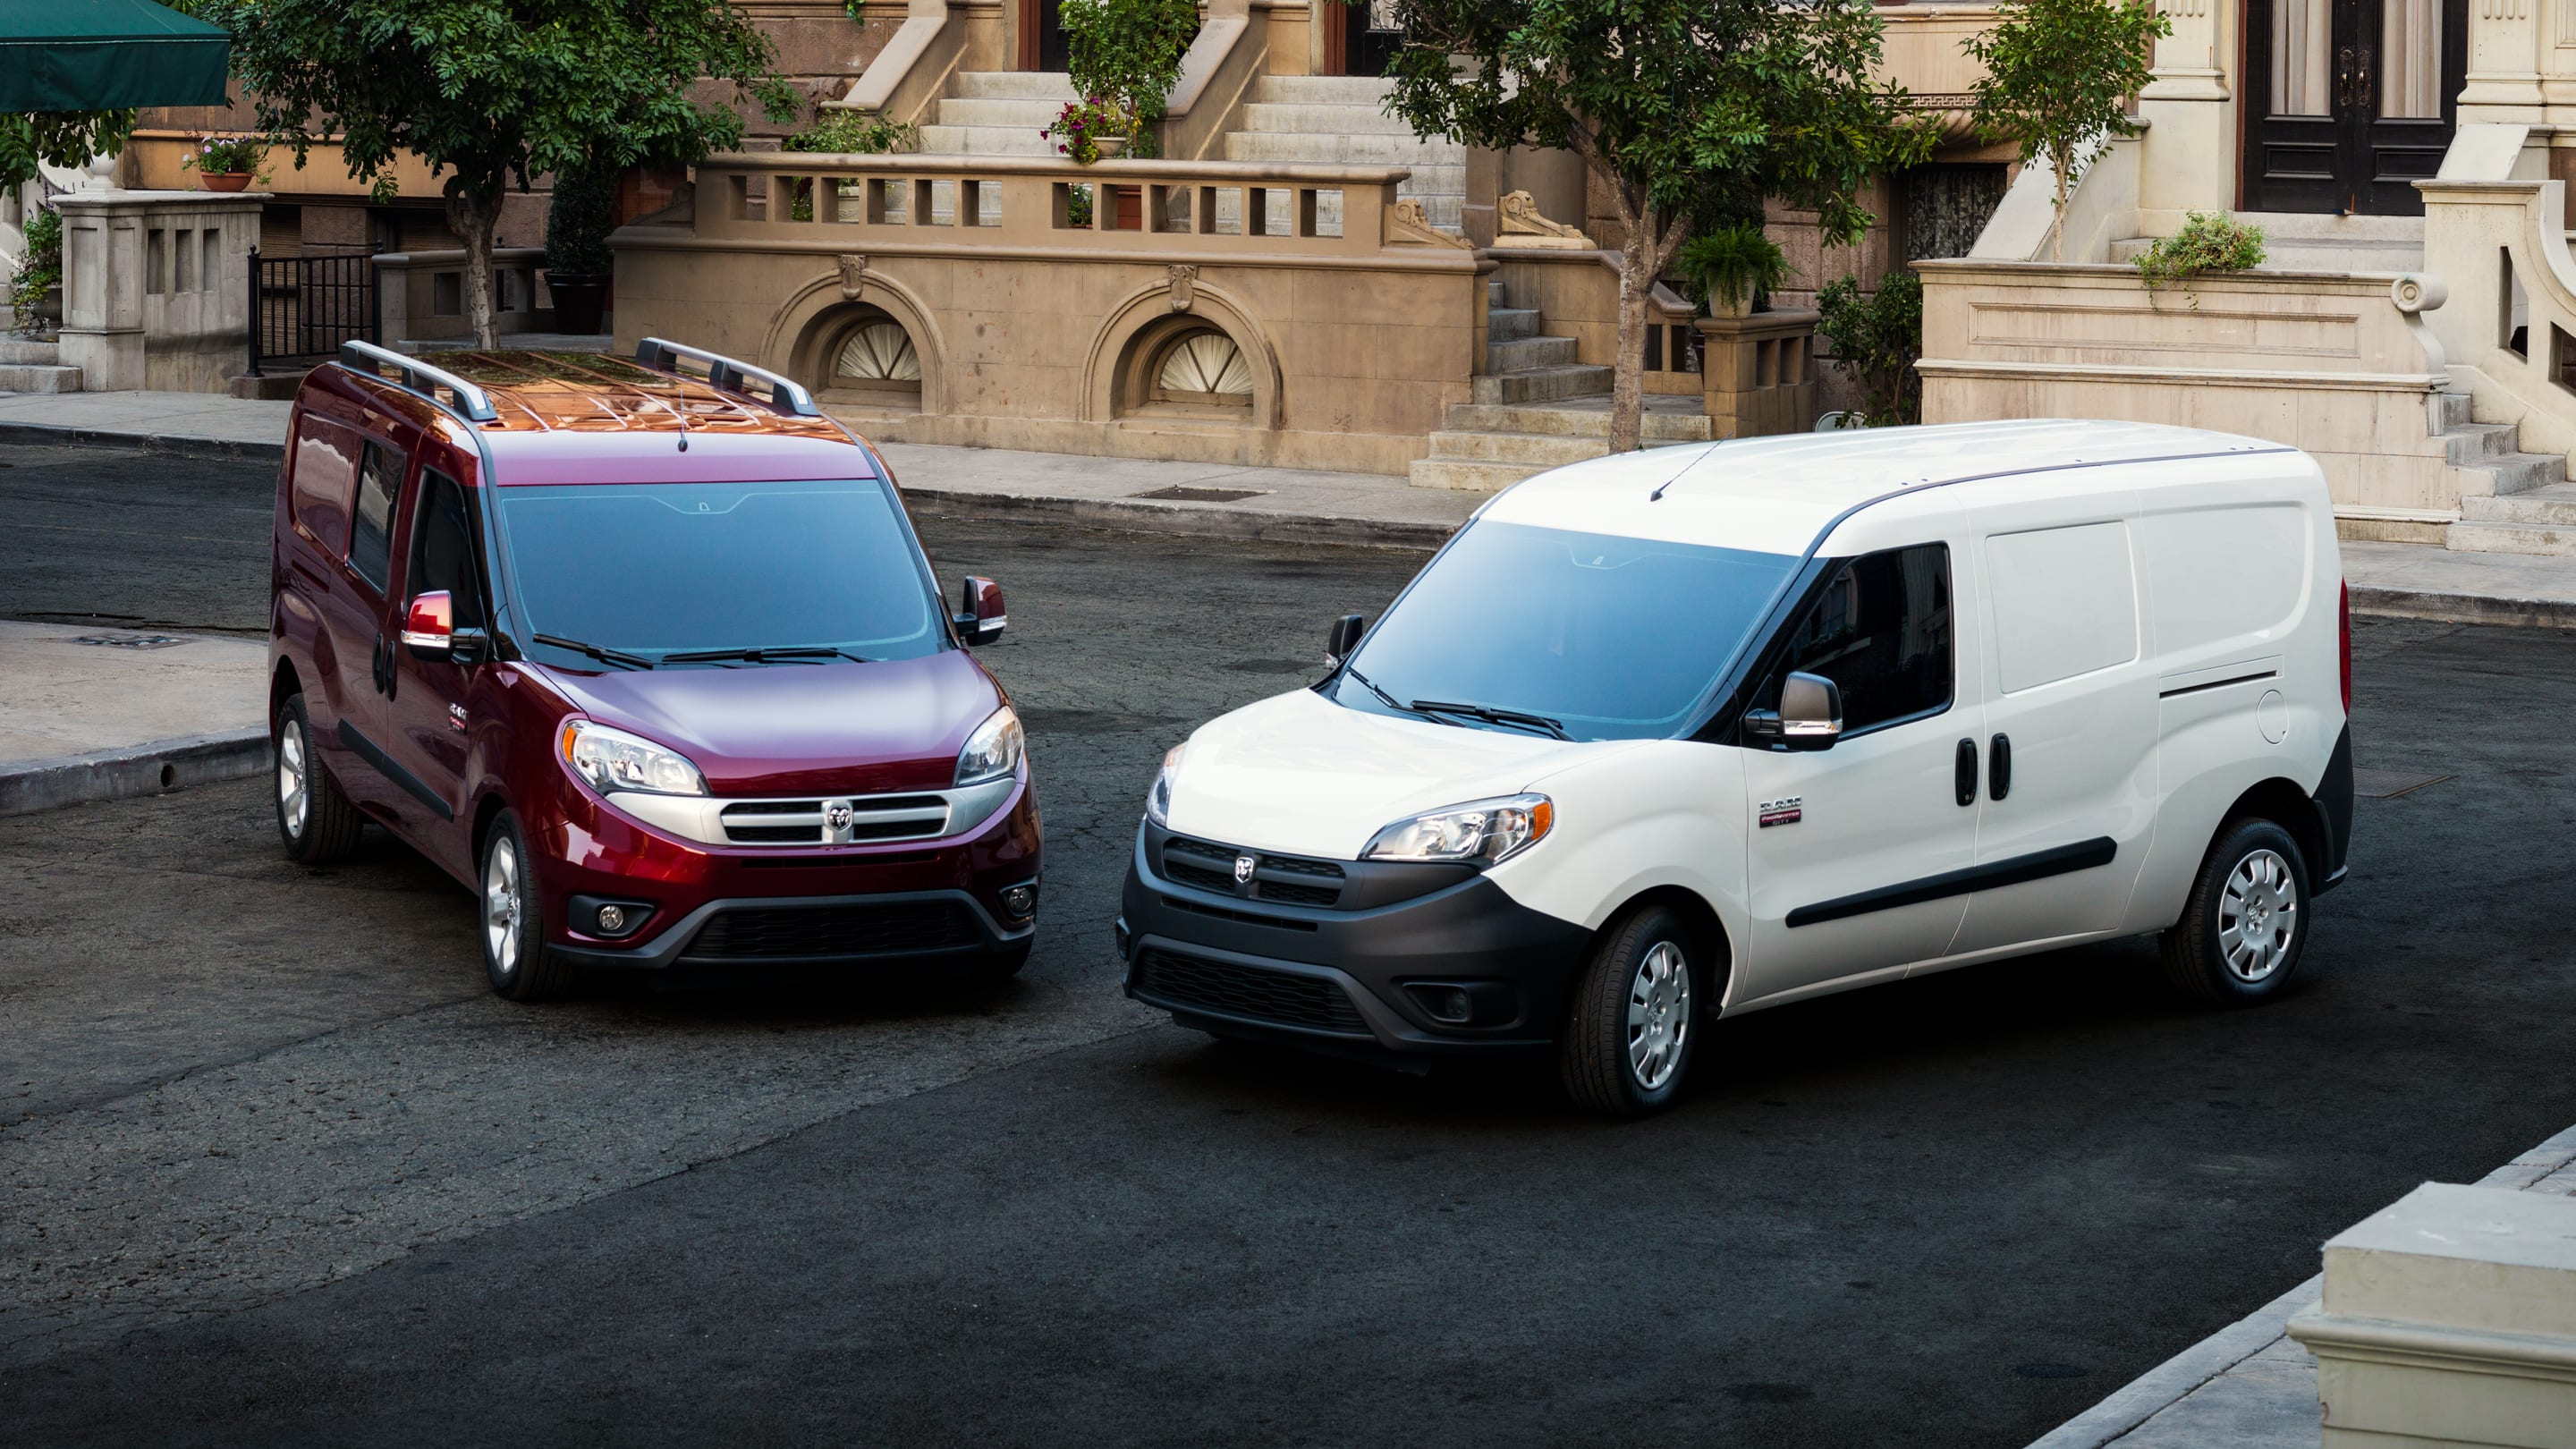 Display Ram ProMaster City Wagon and Cargo vans parked side by side.